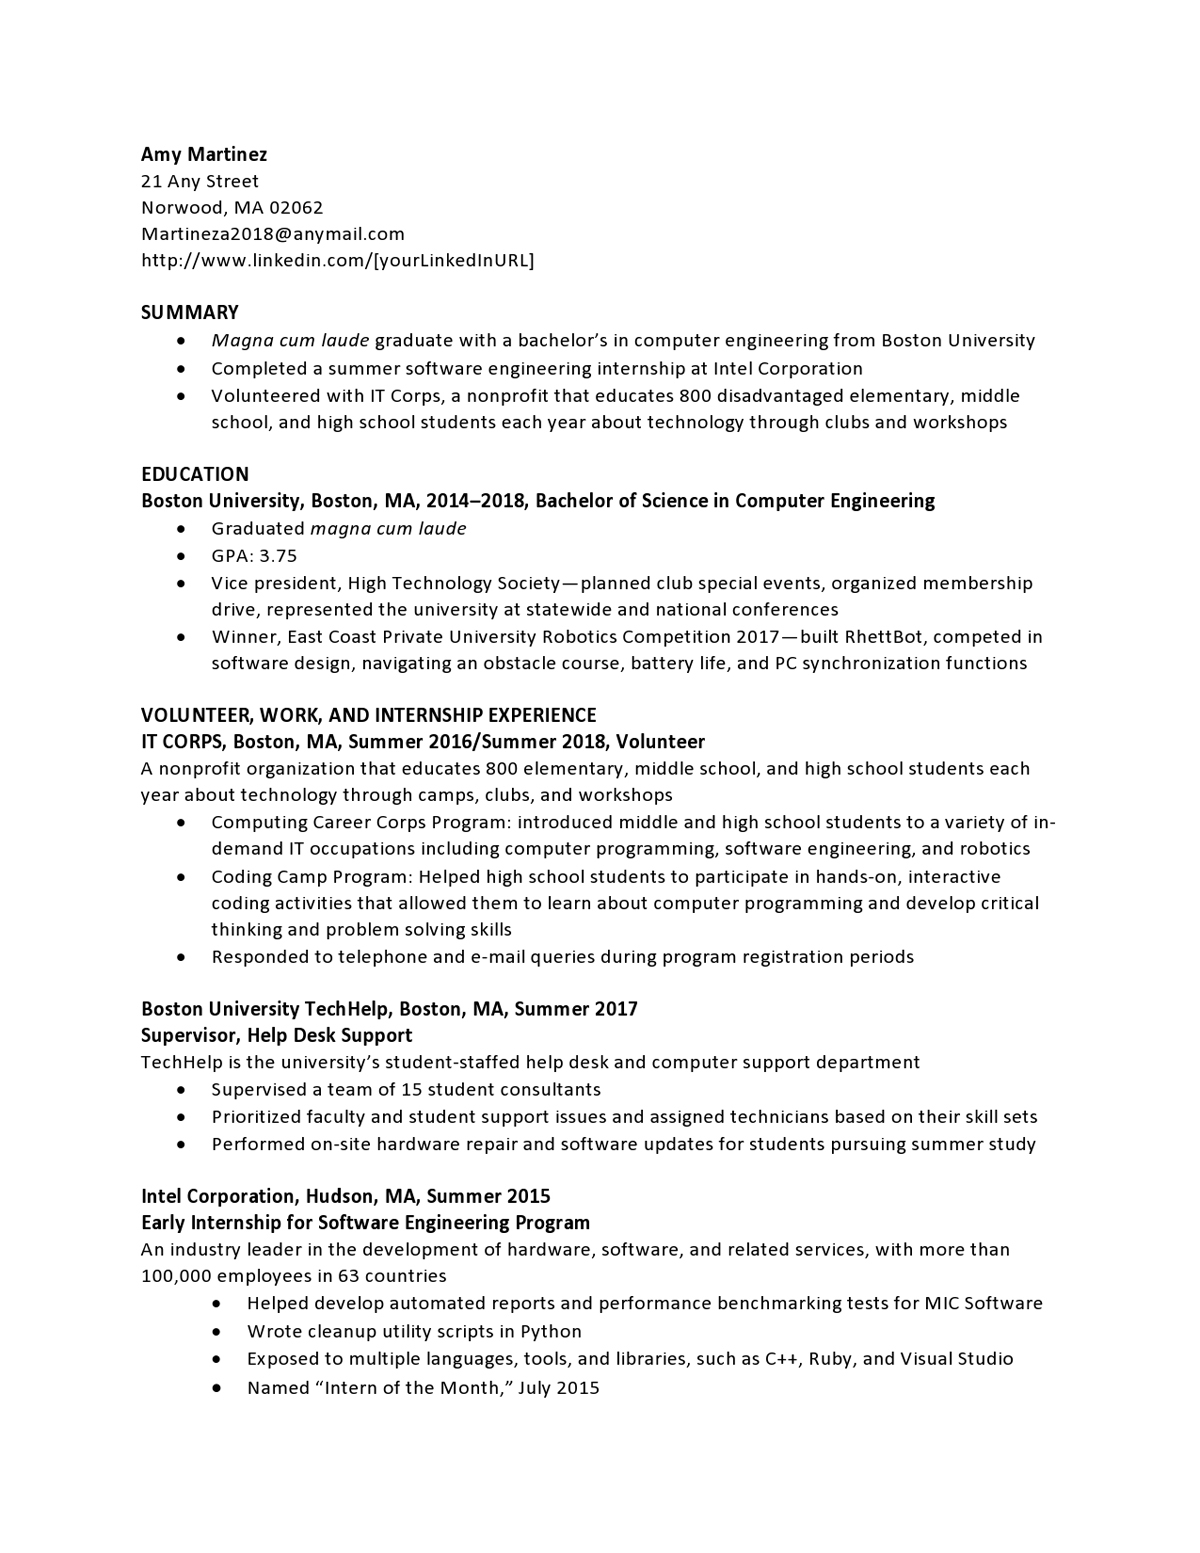 resume samples templates examples vault information technology summary crescoinftech43 Resume Information Technology Summary Resume